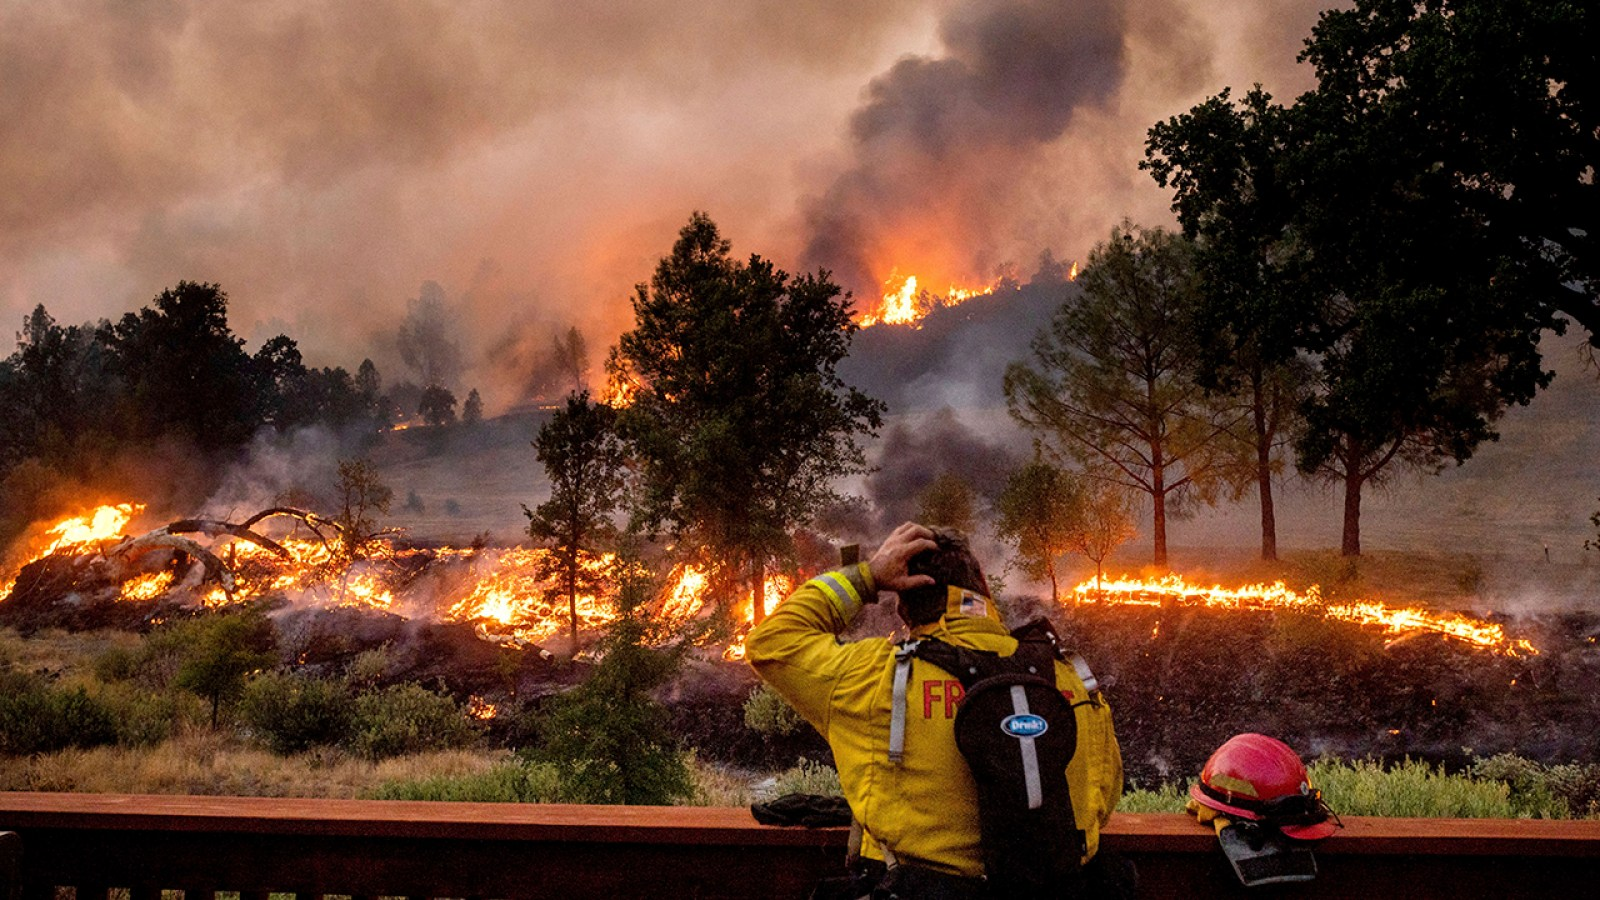 A dangerous fire season looms as the drought-stricken Western US heads for a water crisis 2021